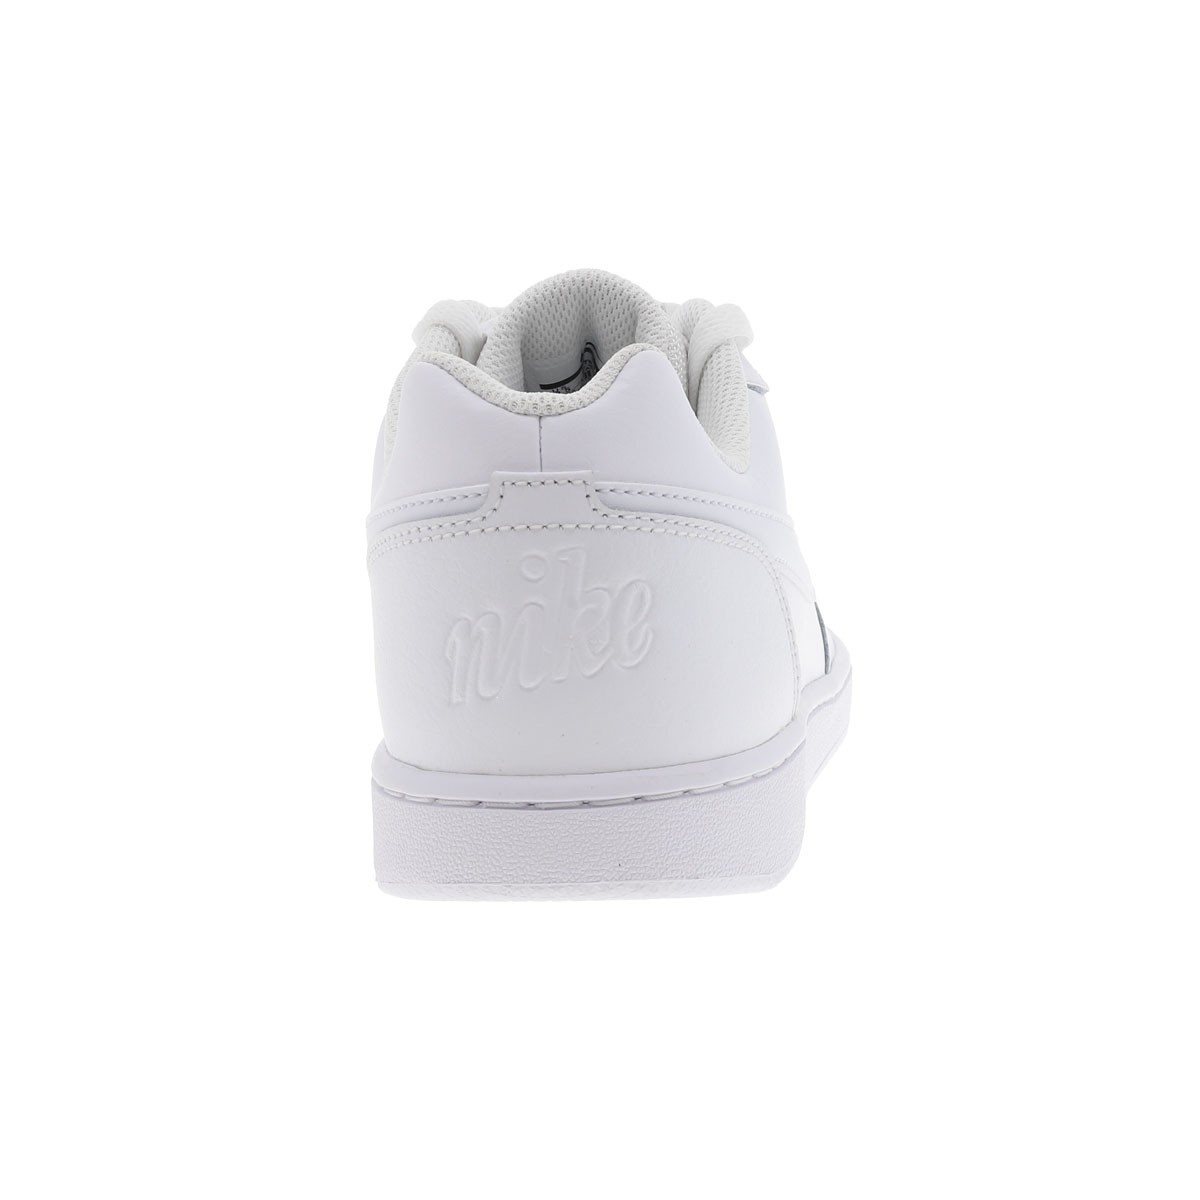 Chaussures La Redoute Adidas Chaussures La Adidas gbf7y6